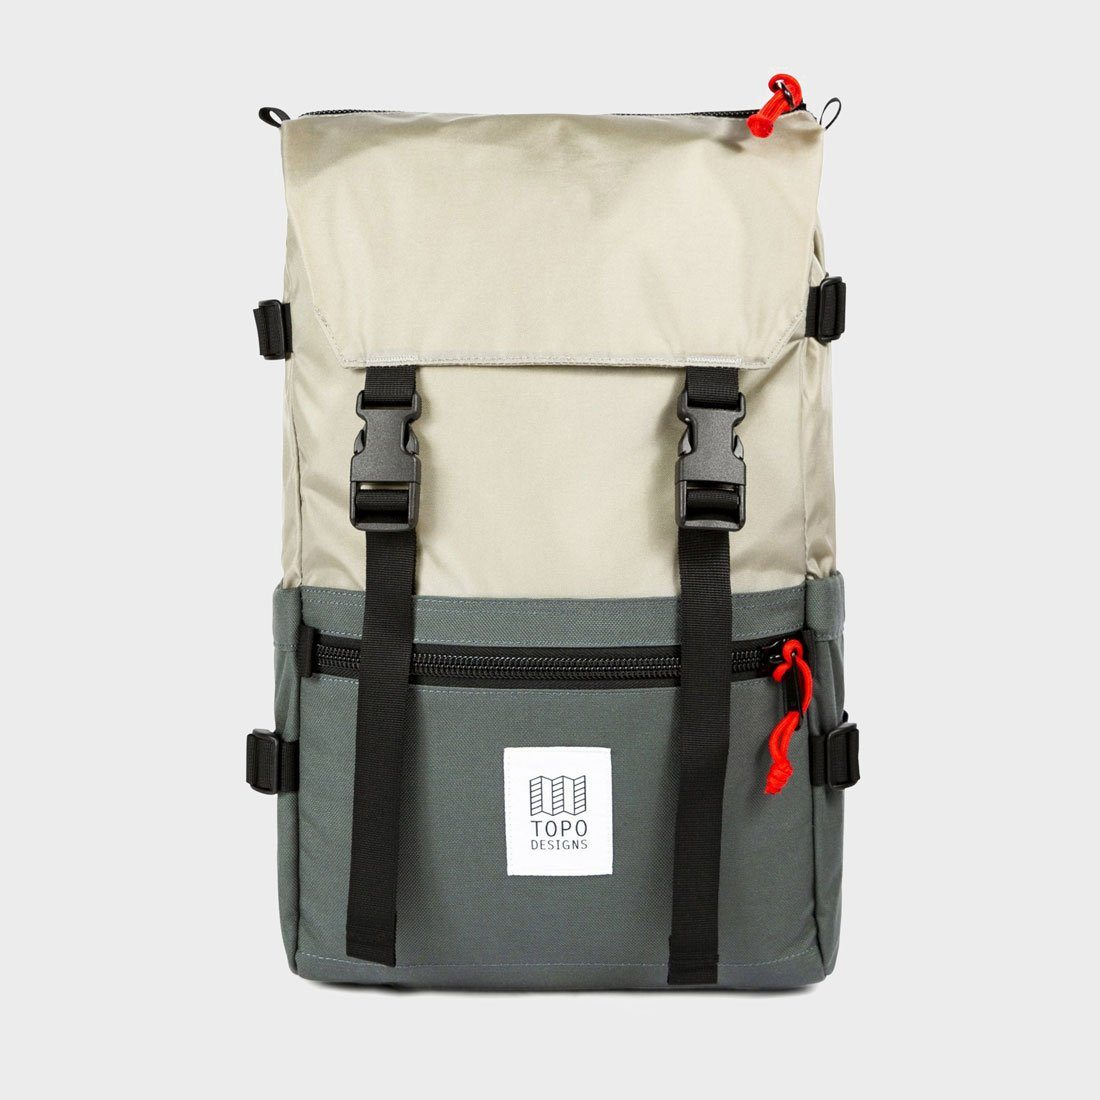 Topo Designs Rover Pack Silver/ Charcoal